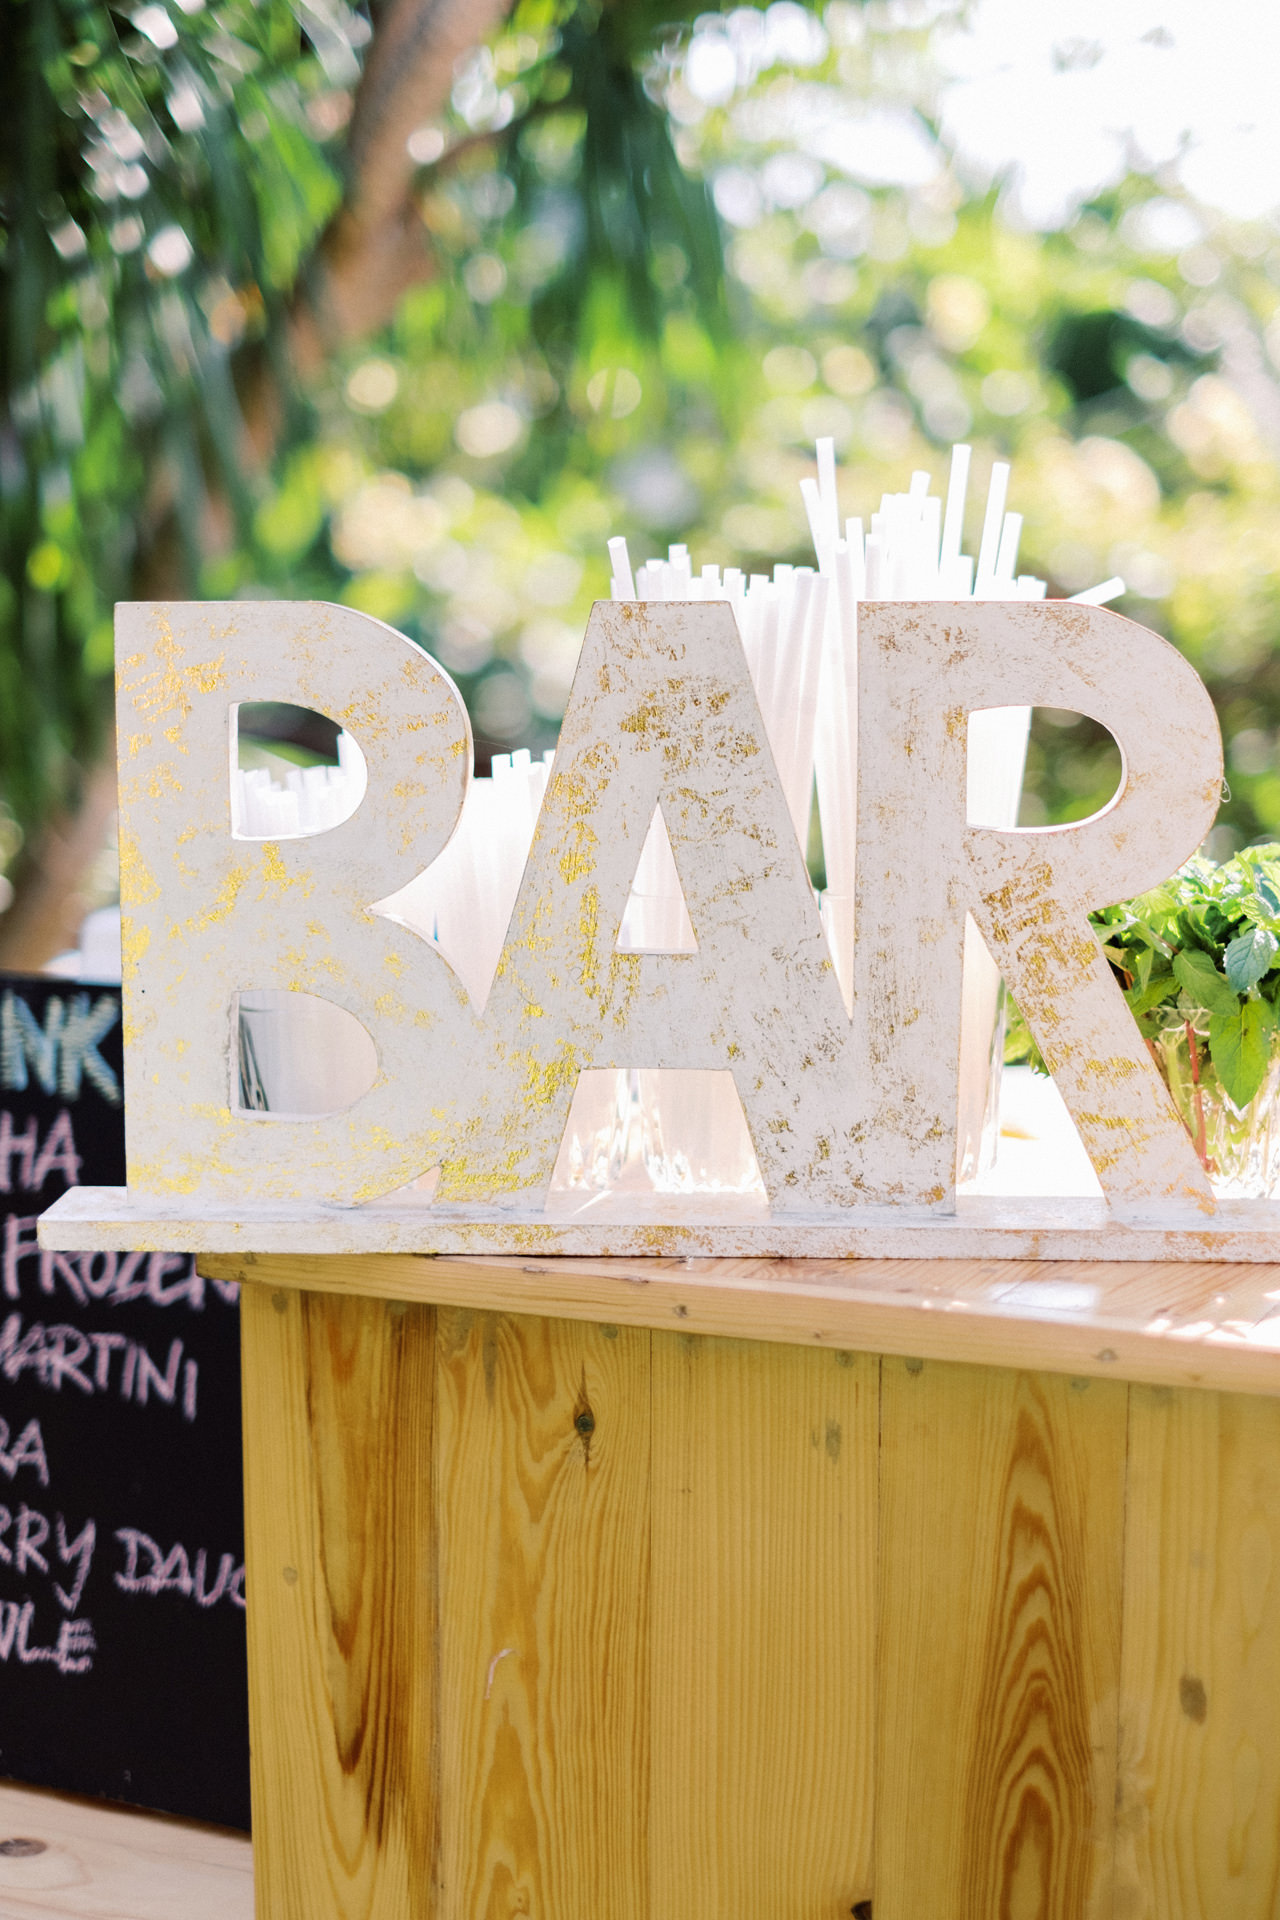 Bar or Cocktail Sign Bali Wedding